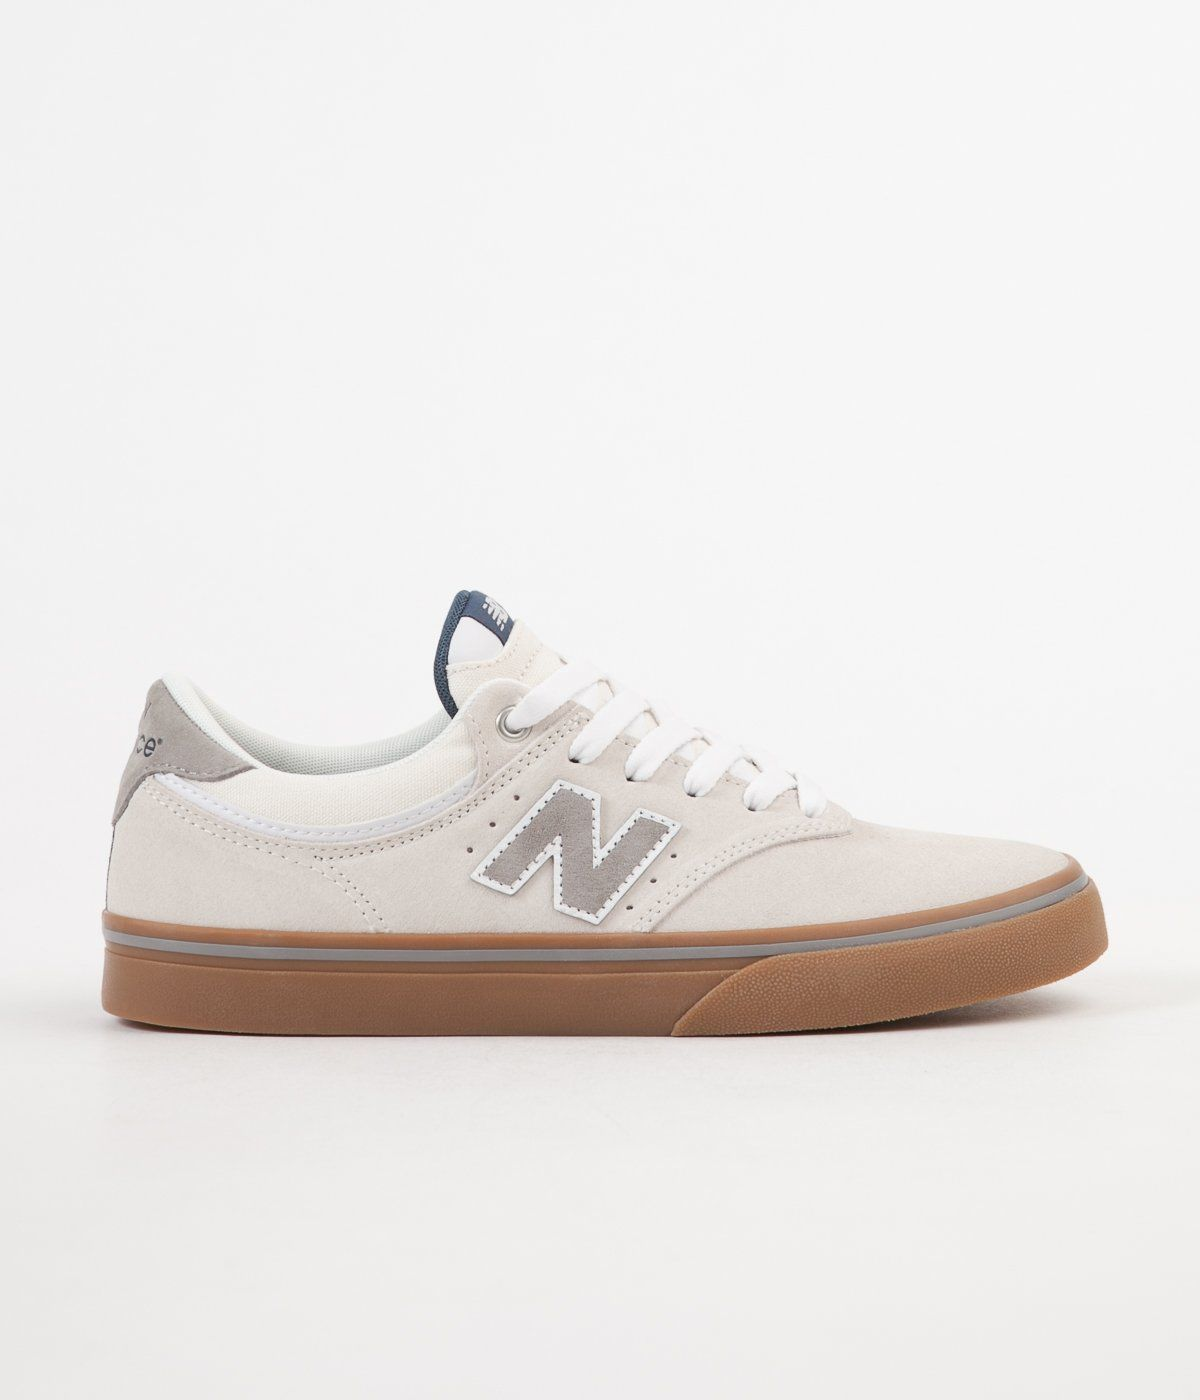 d30b06cf8a094 New Balance Numeric 255 Shoes - Off White in 2019 | Fashion | Shoes ...